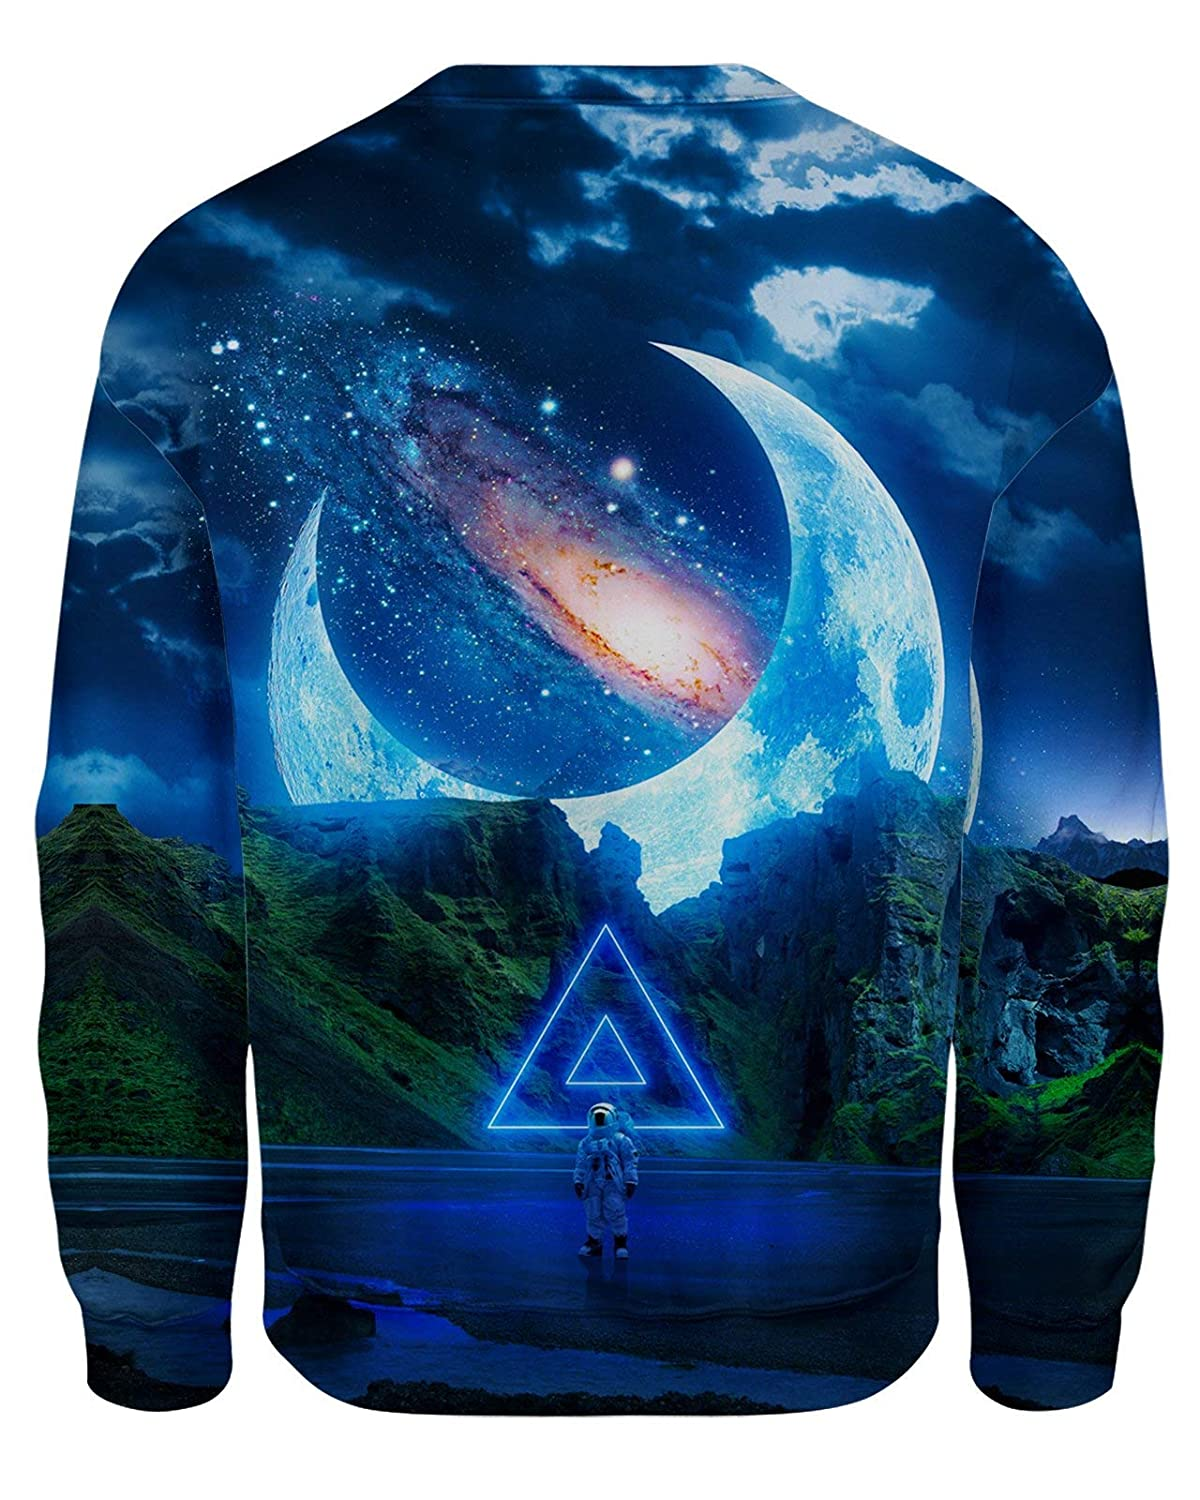 All Over Shirts Moonlit Sweatshirt